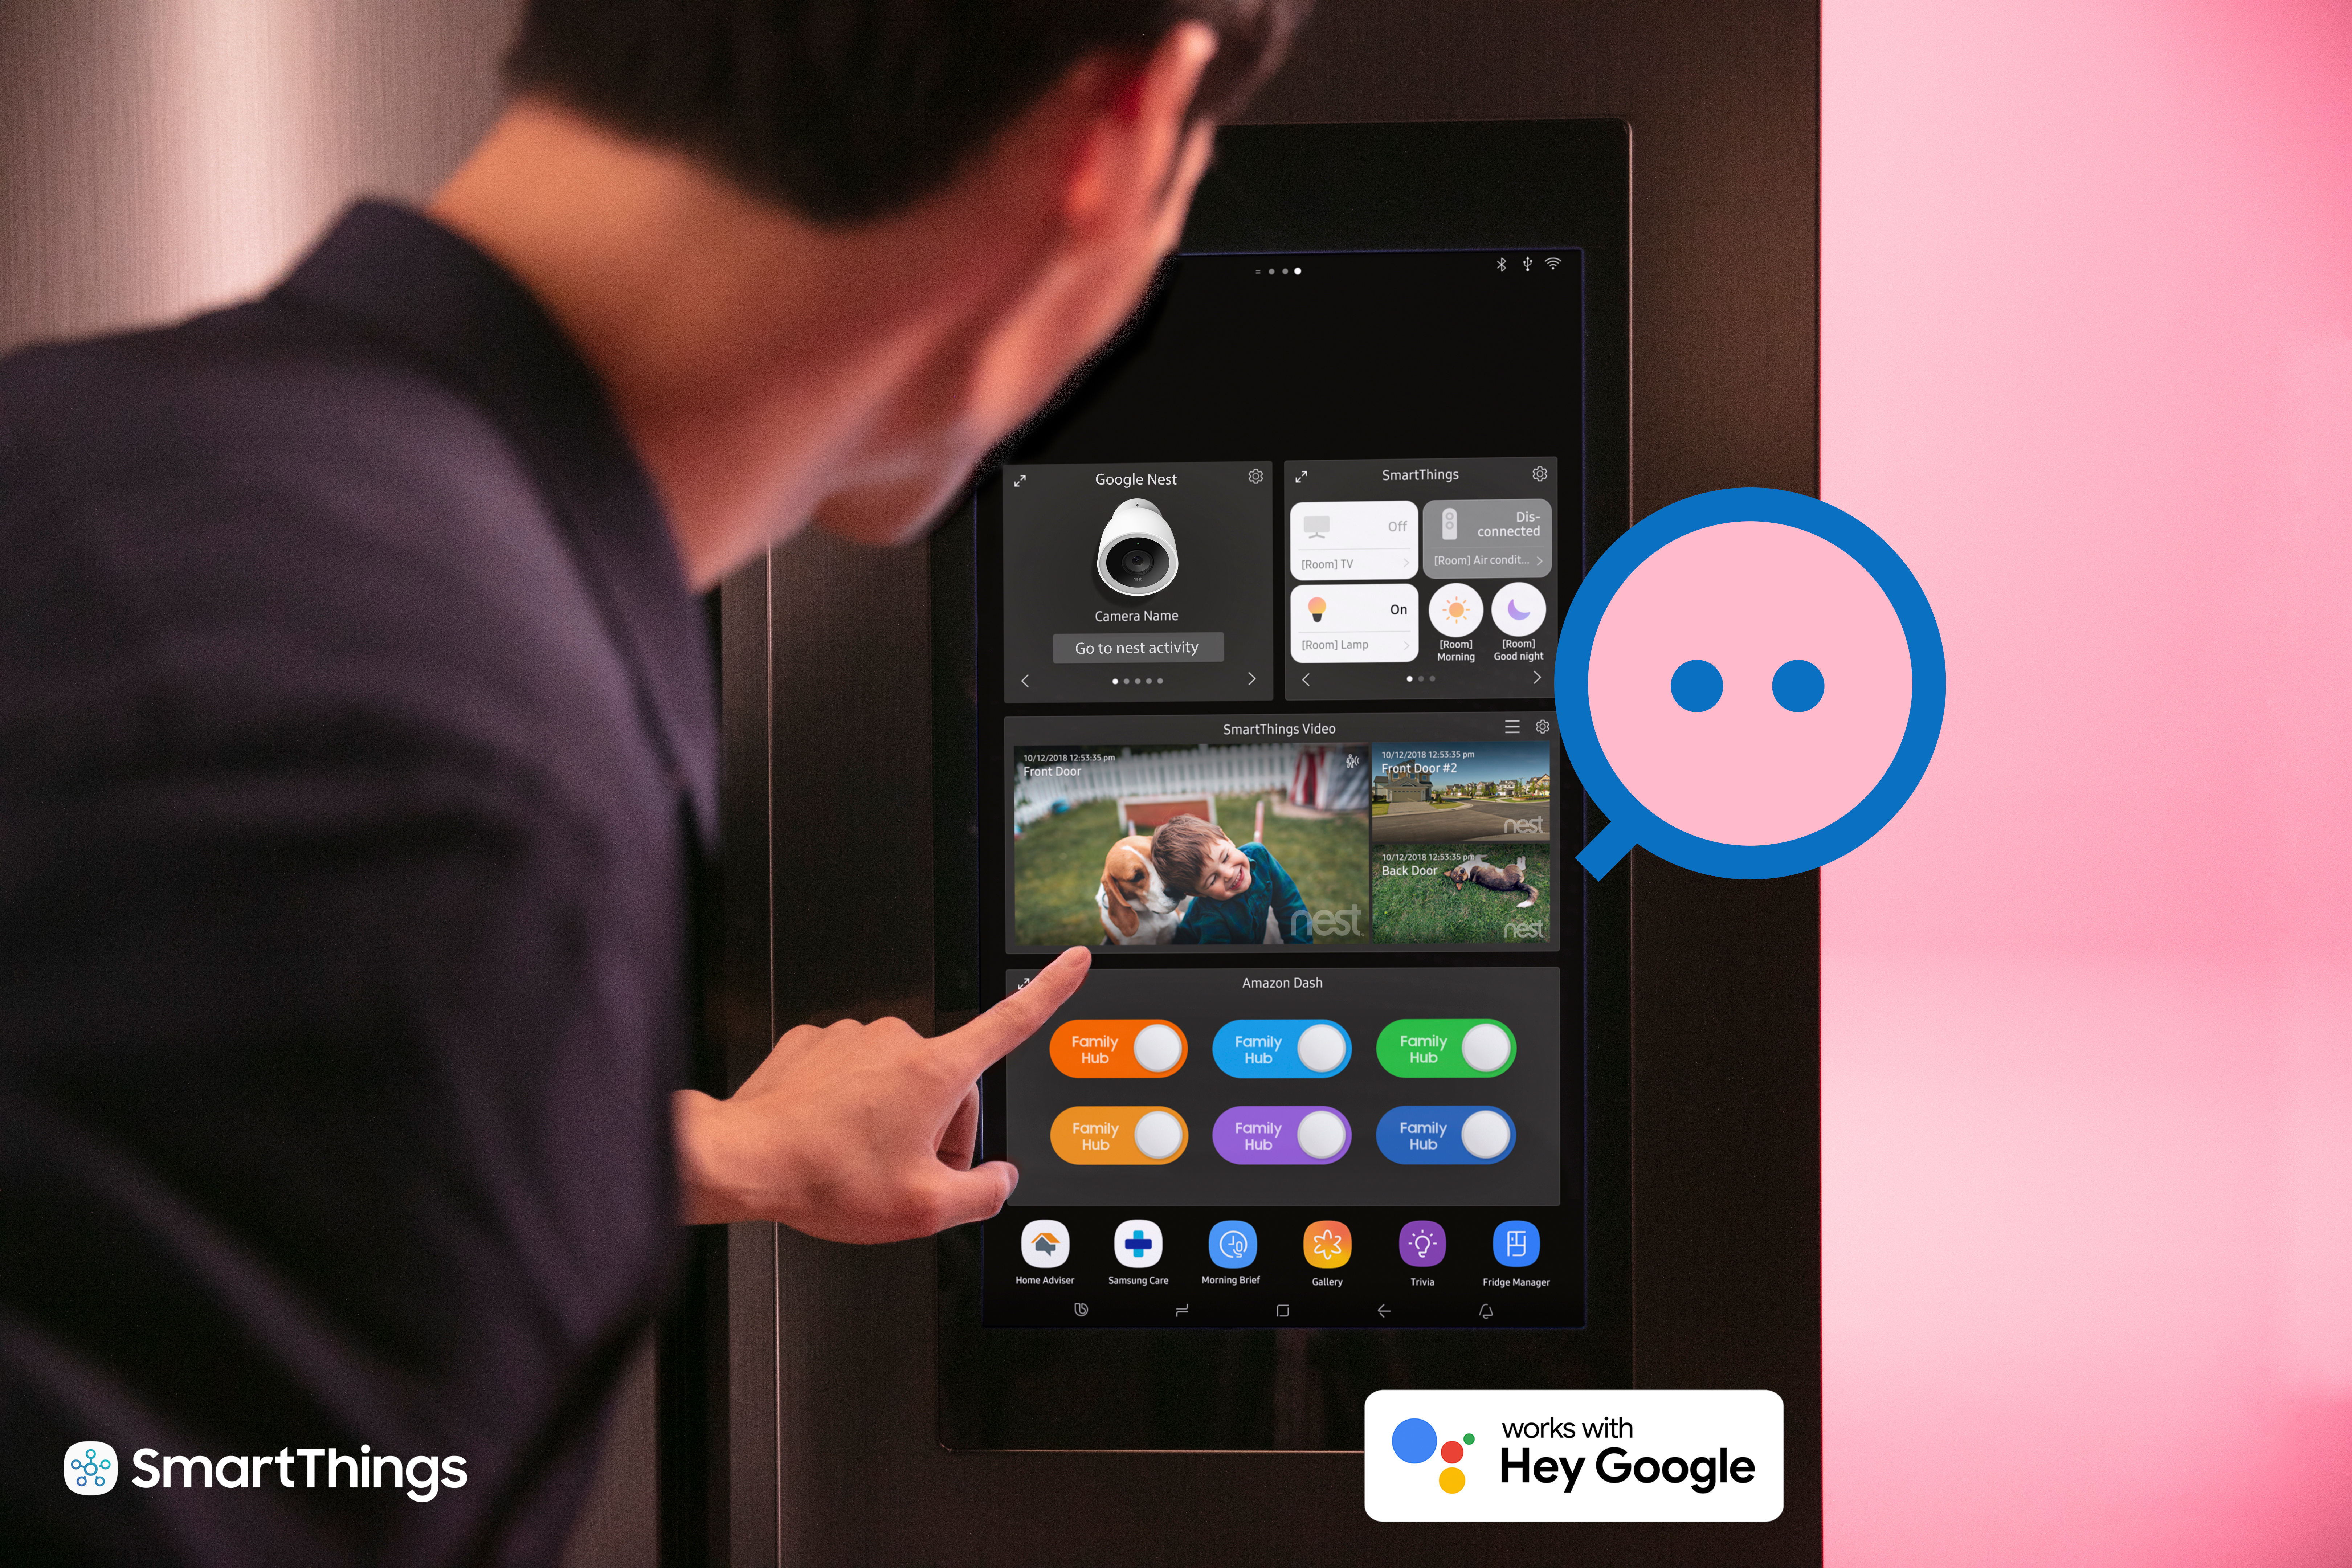 Samsung imagines you'll control your Nest thermostat from your Samsung refrigerator. I don't know about that, but having everything in a single app would be handy.